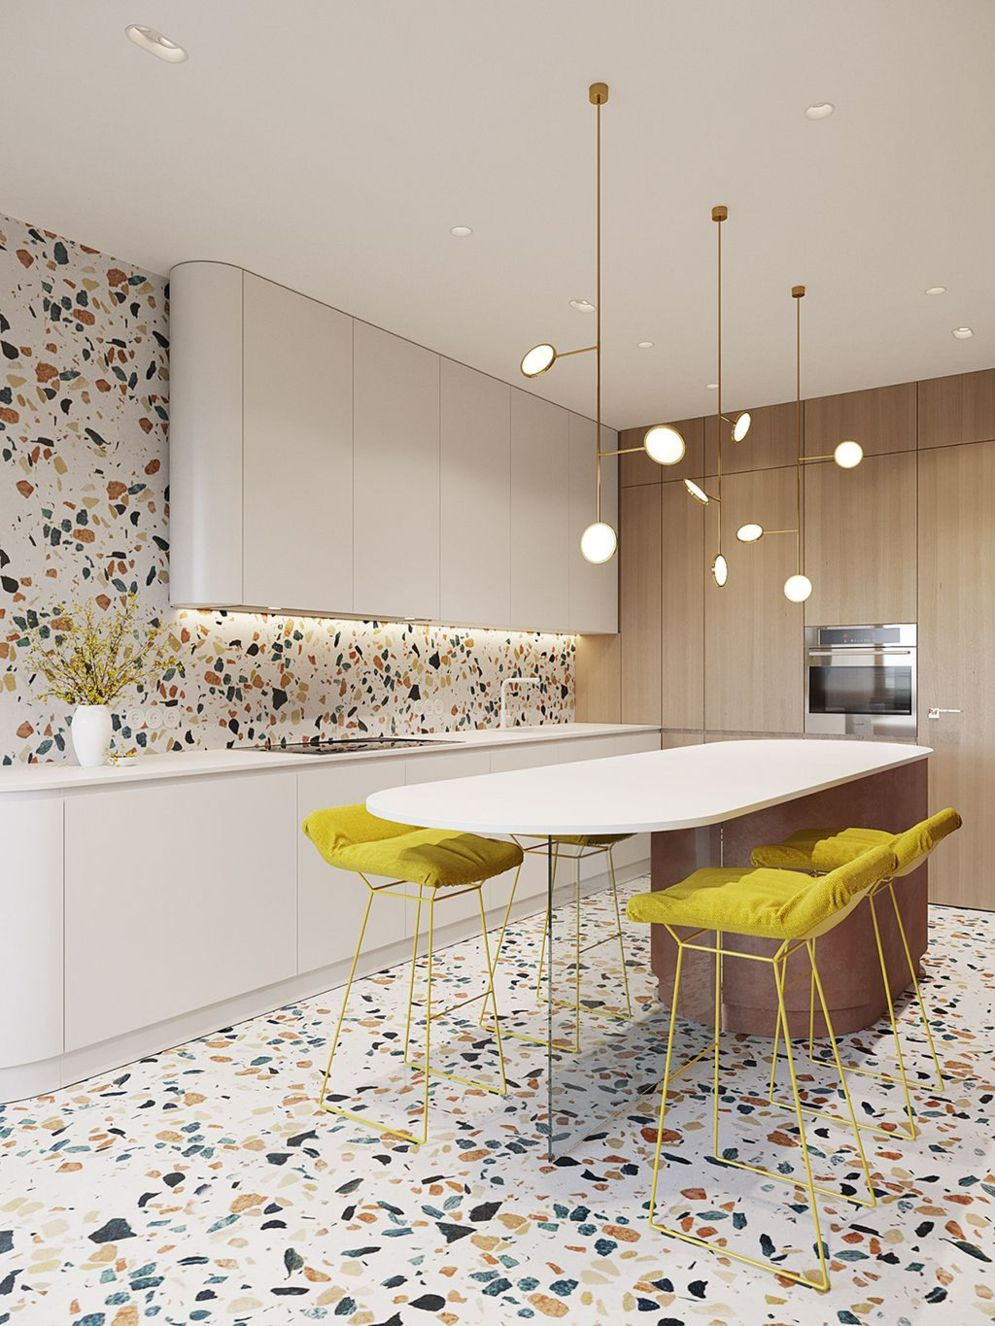 Amazing terrazzo decoration revival giving a cozy look in a warm and friendly interior scheme Image 11